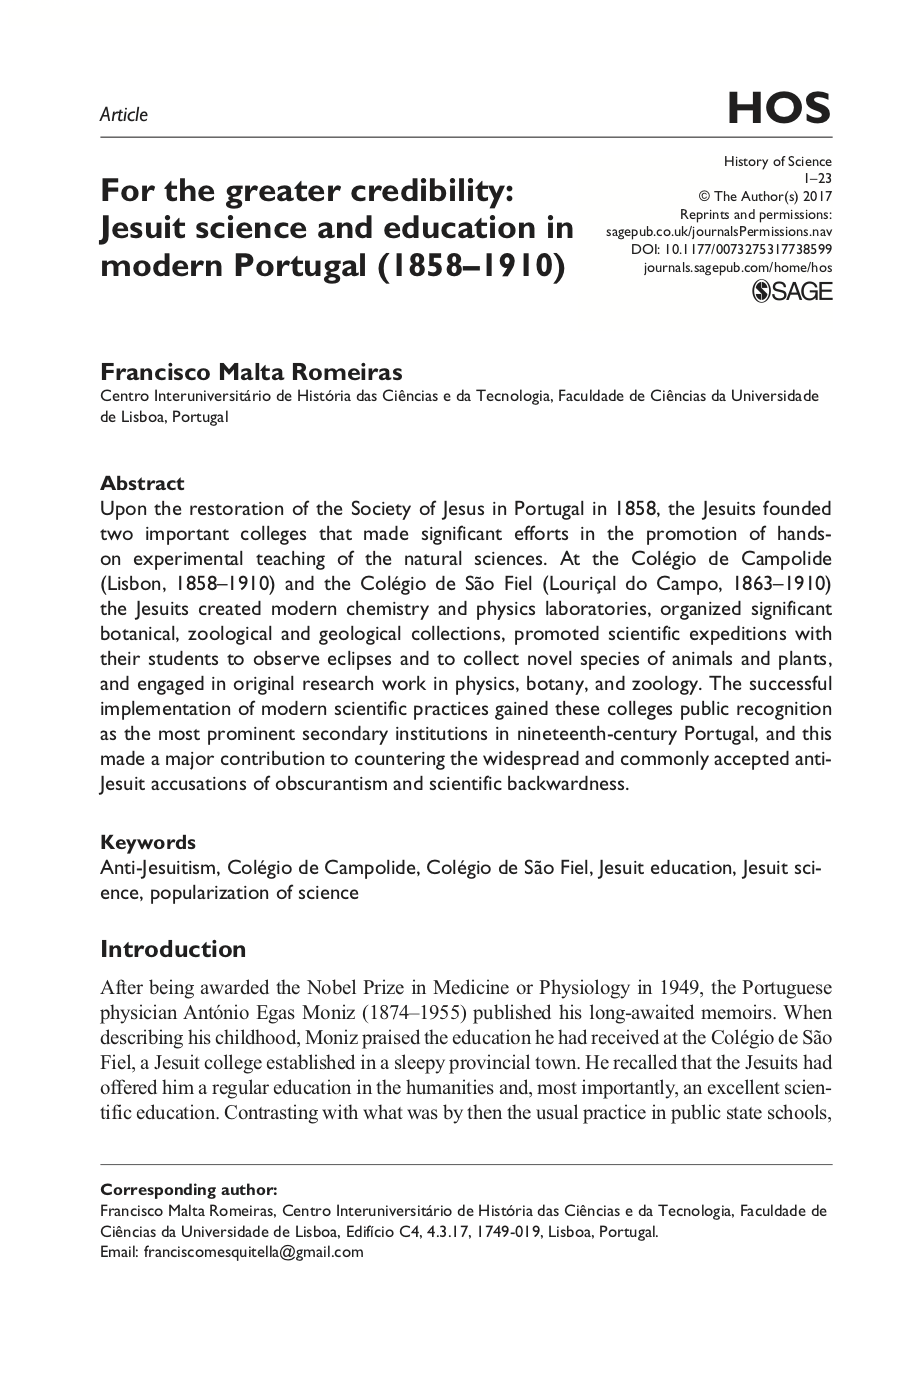 For the Greater Credibility: Jesuit Science and Education in Modern Portugal (1858-2002), Capa